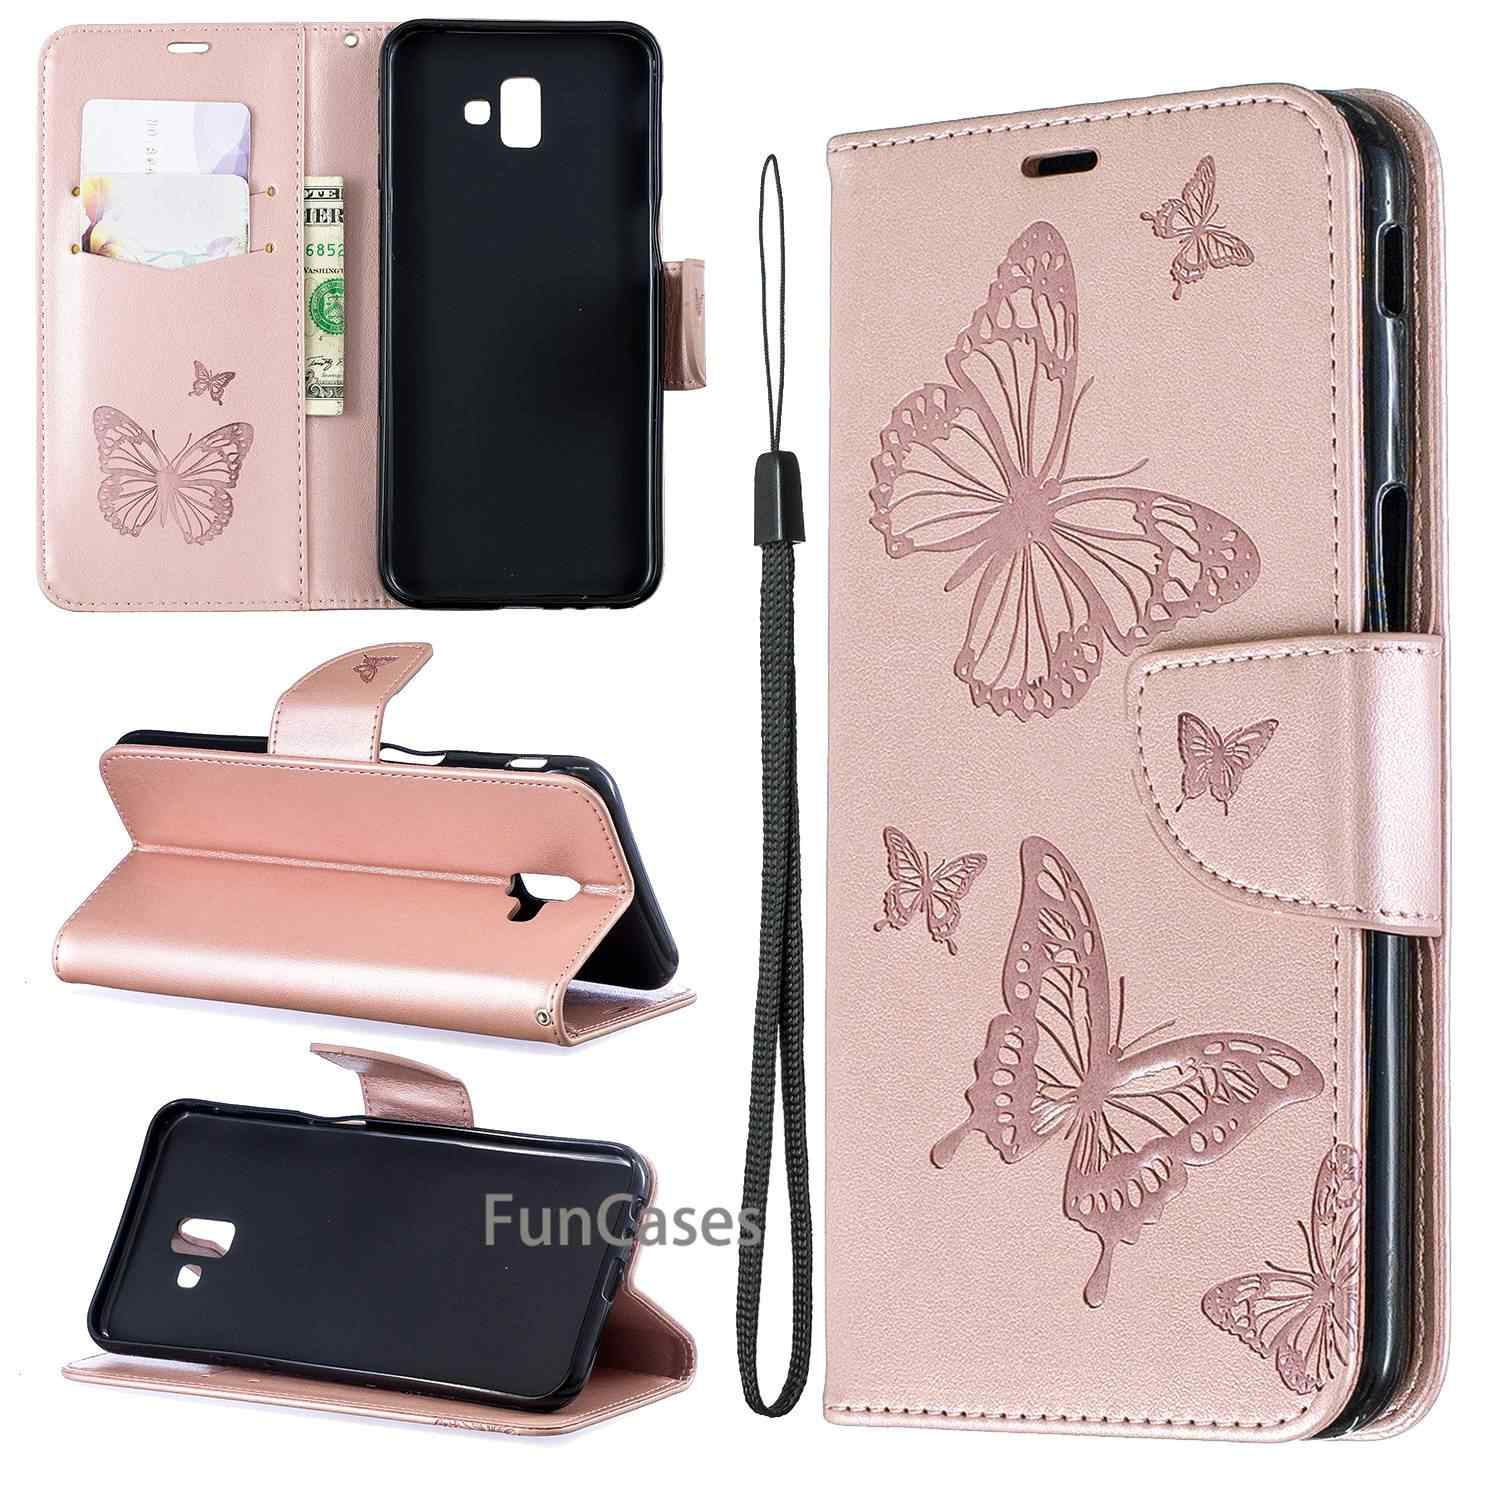 Phone Case For Fundas Samsung J6 Plus case Leather Wallet For Coque Samsung Galaxy J6 Plus J610 J610F SM-J610F Wallet Flip Cover